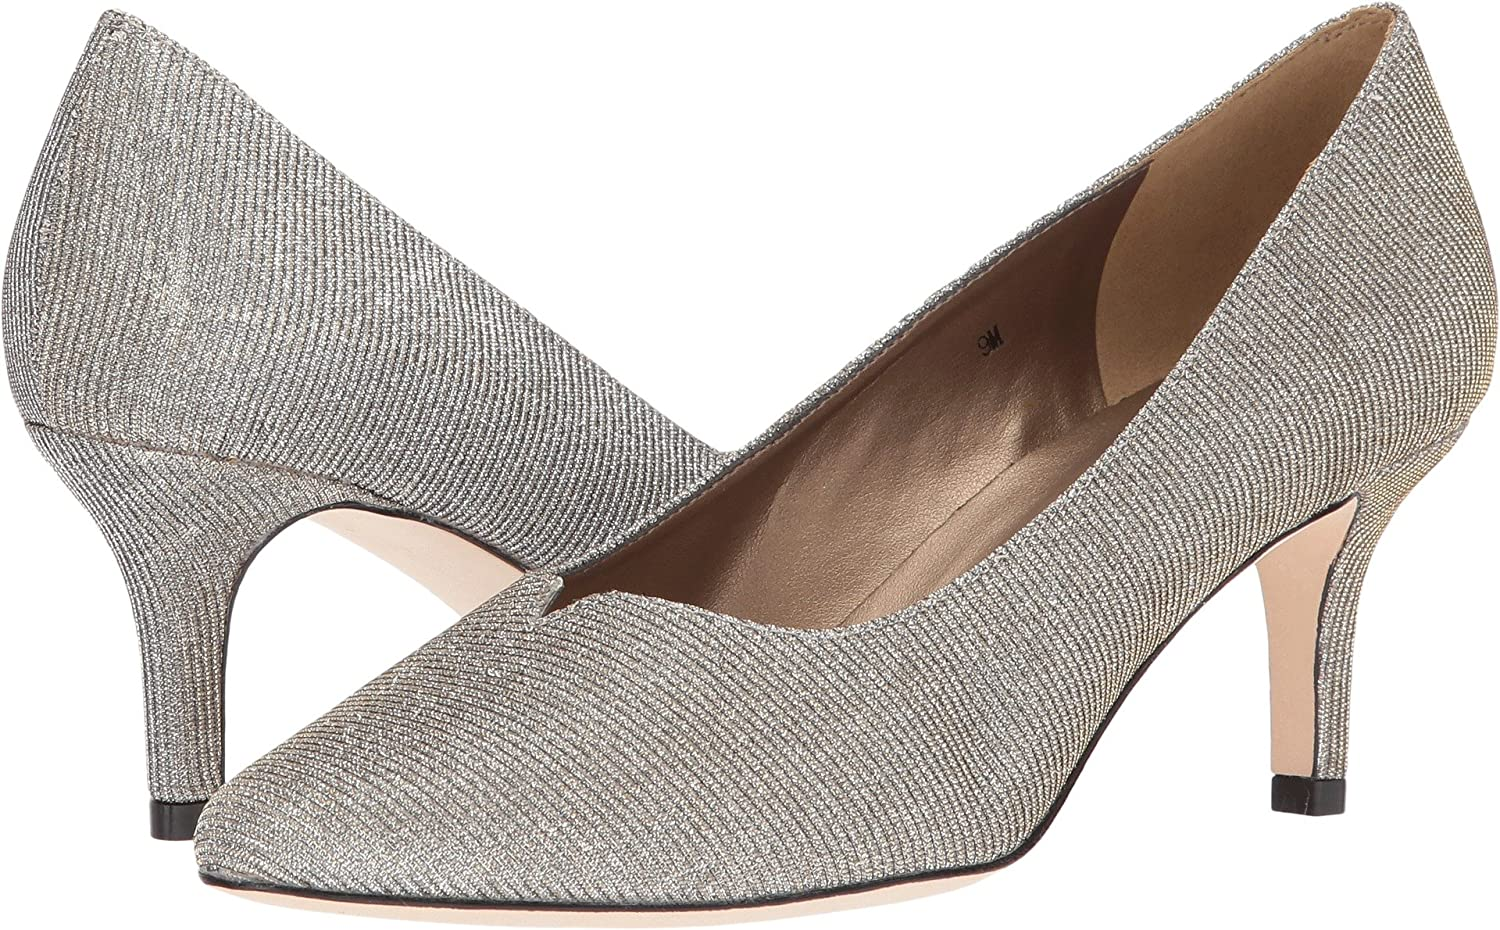 VANELi Women's Linden Pumps Shoes B01N9TG69T 8 B(M) US|Platinum Nizza Fabric